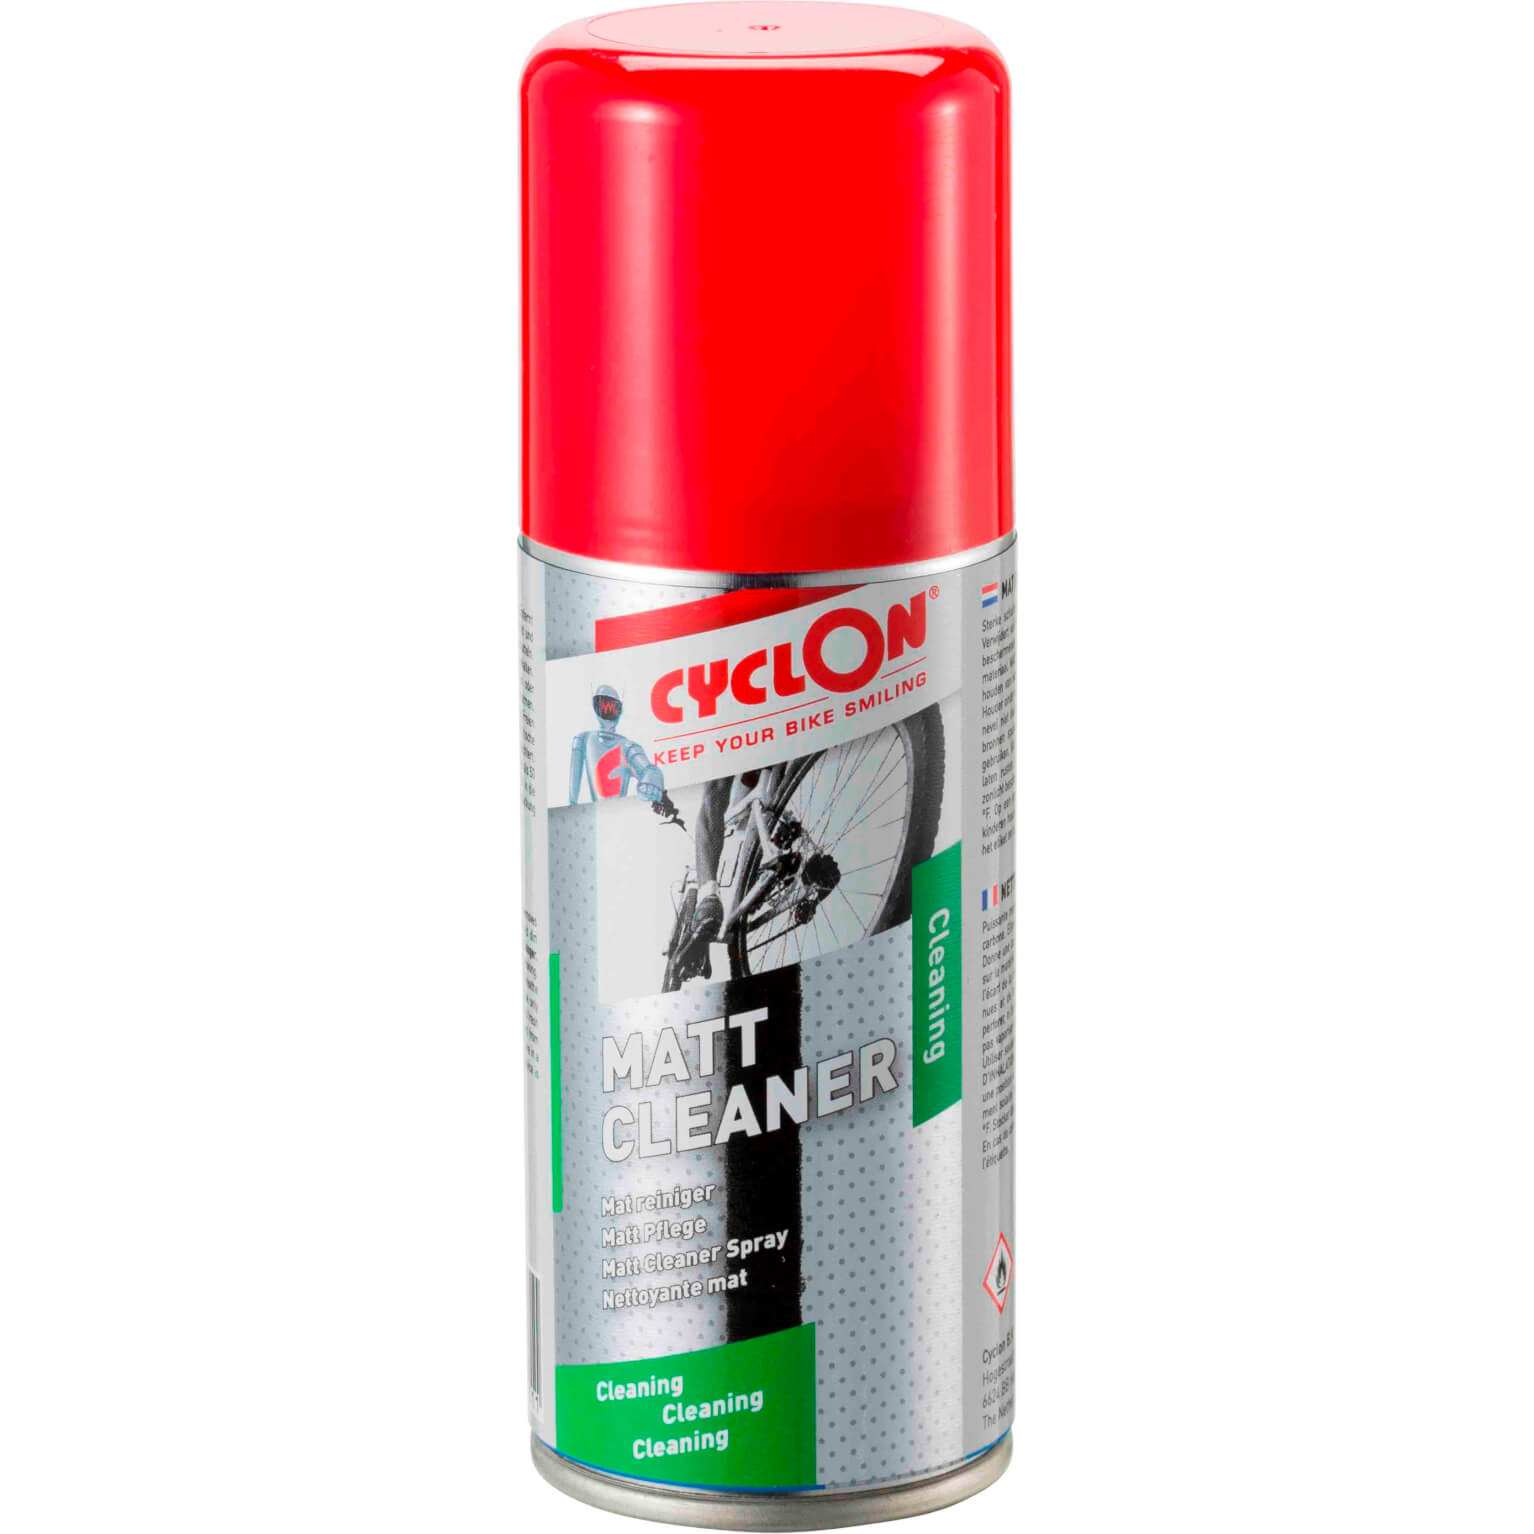 Cyclon Matt Reiniger Spray 100ml